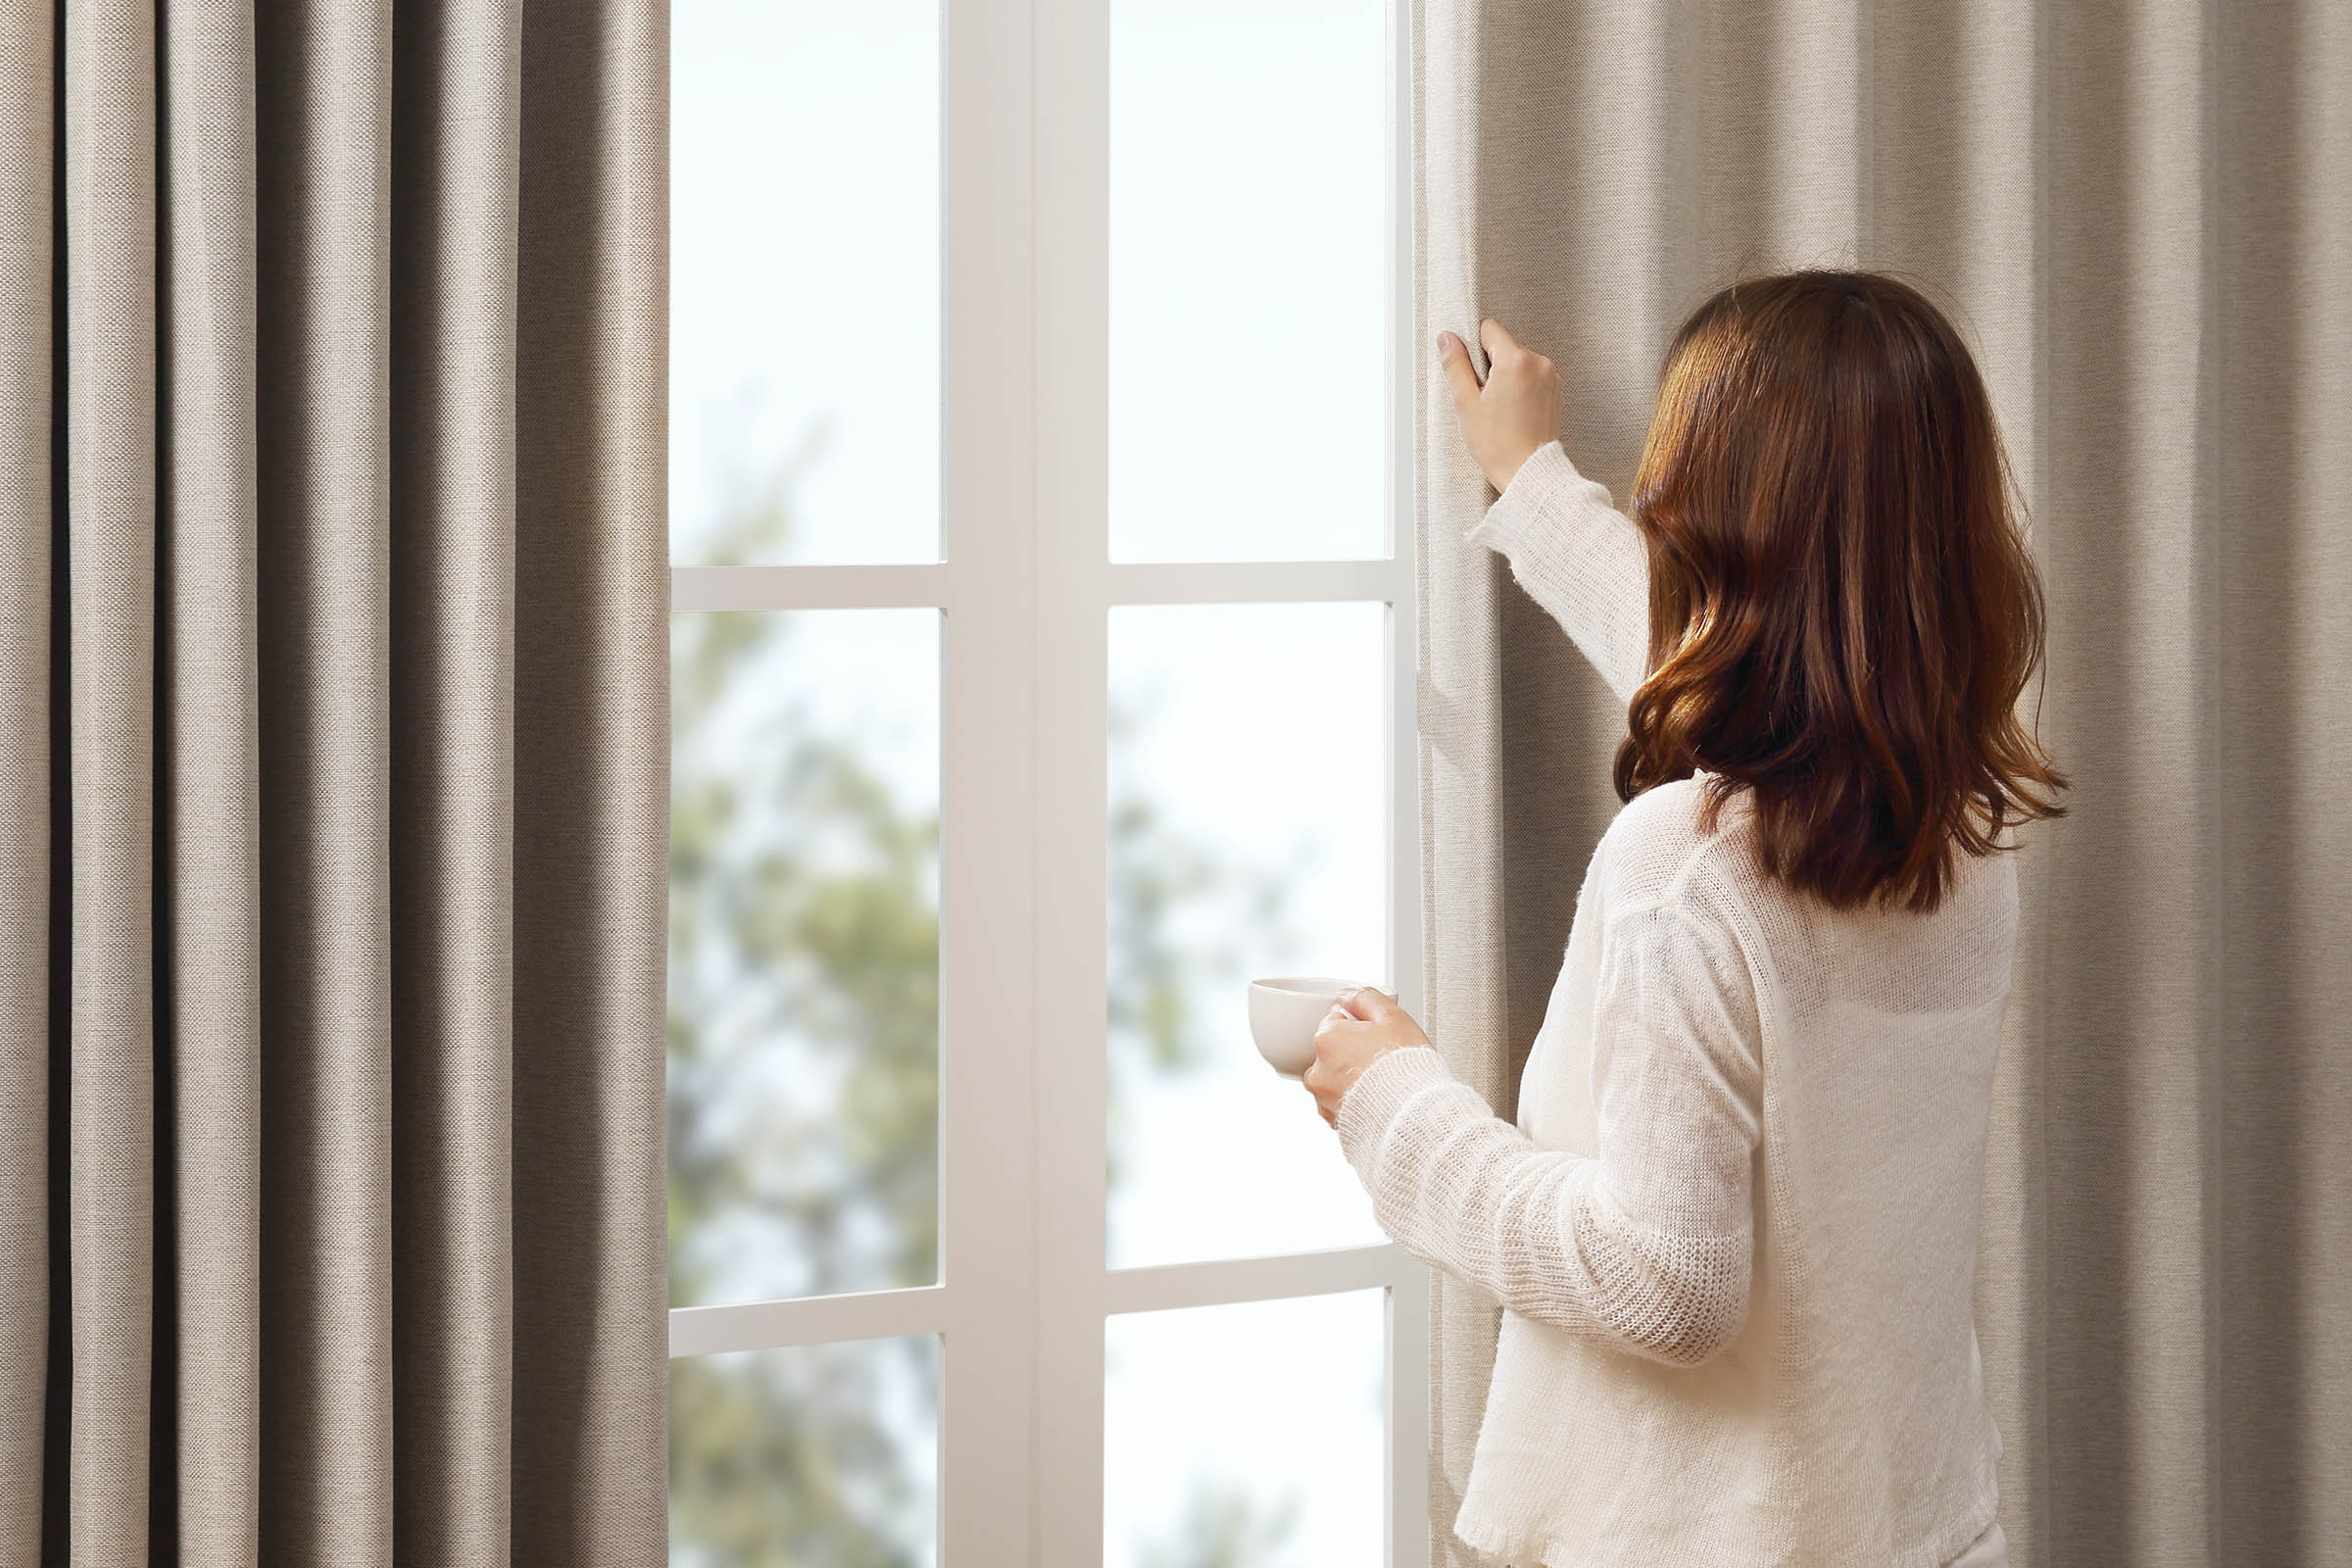 Even with SwitchBot Curtain, you'd probably still instinctively draw the curtains by hand. When SwitchBotCurtain senses your littlepull, it will kick in and do the rest of work for you, so-called Touch & Go.